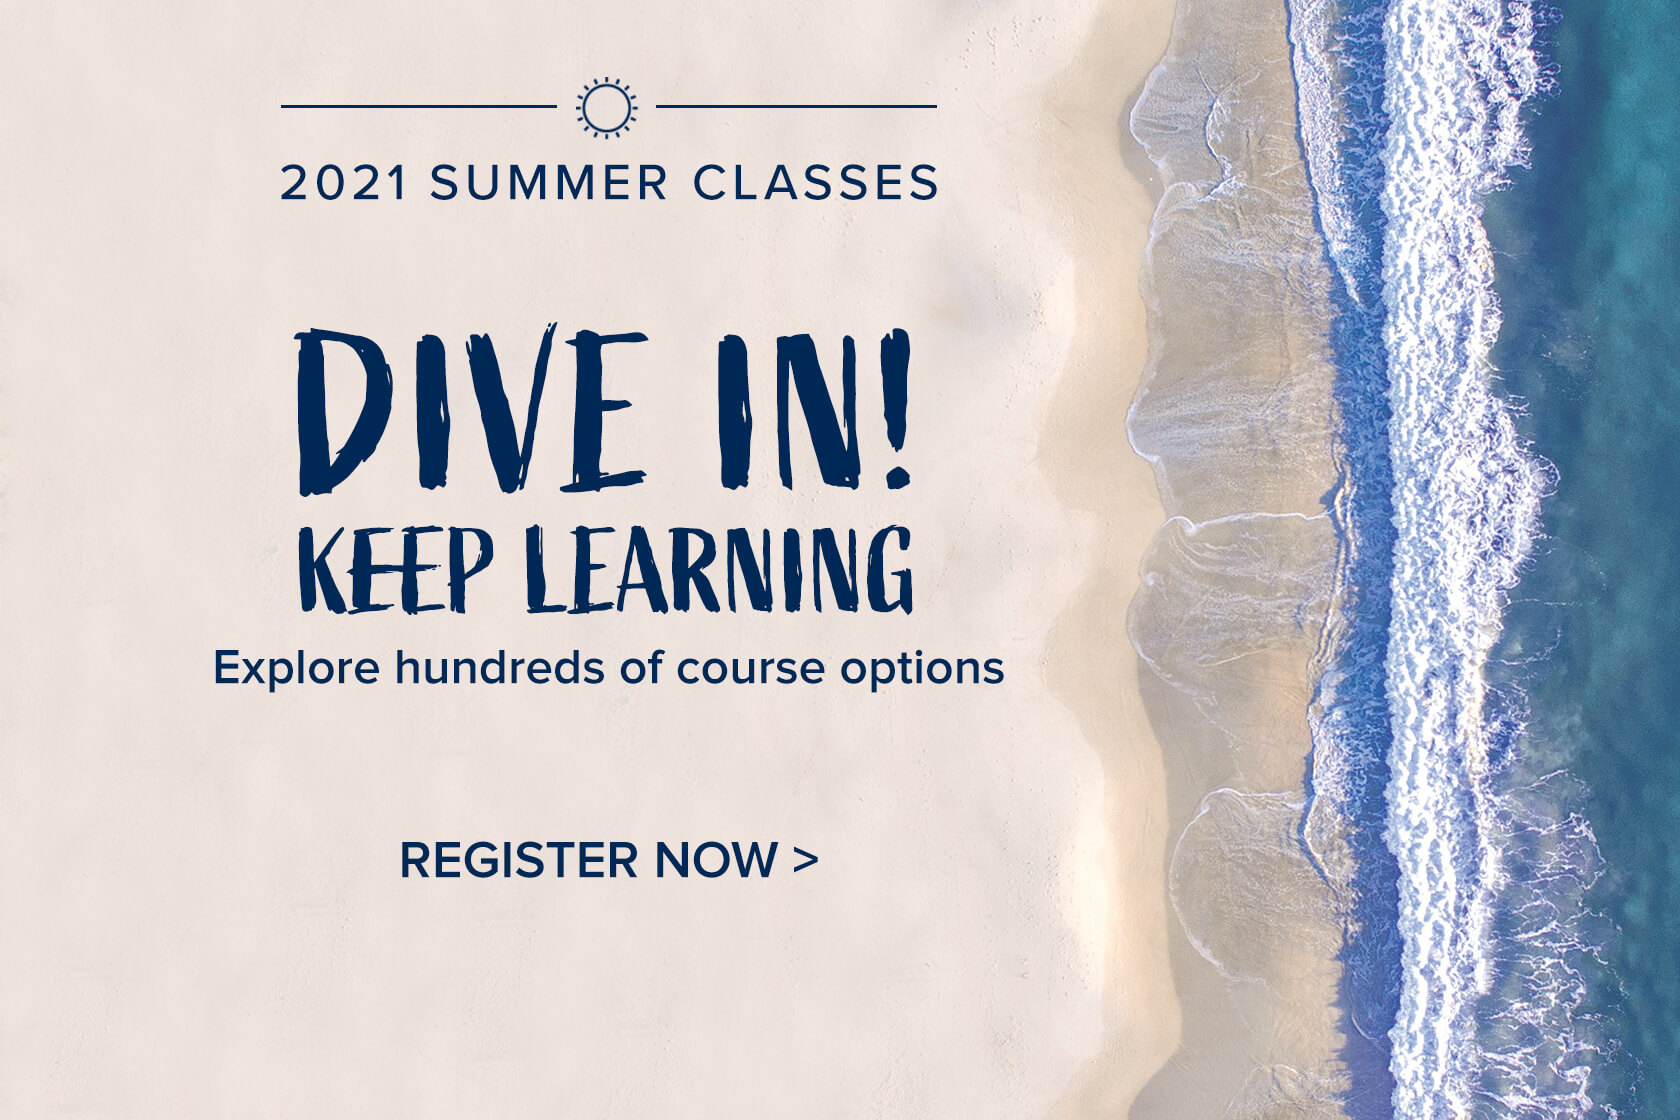 Click or tap to learn more about 2021 Summer Classes at Monmouth University